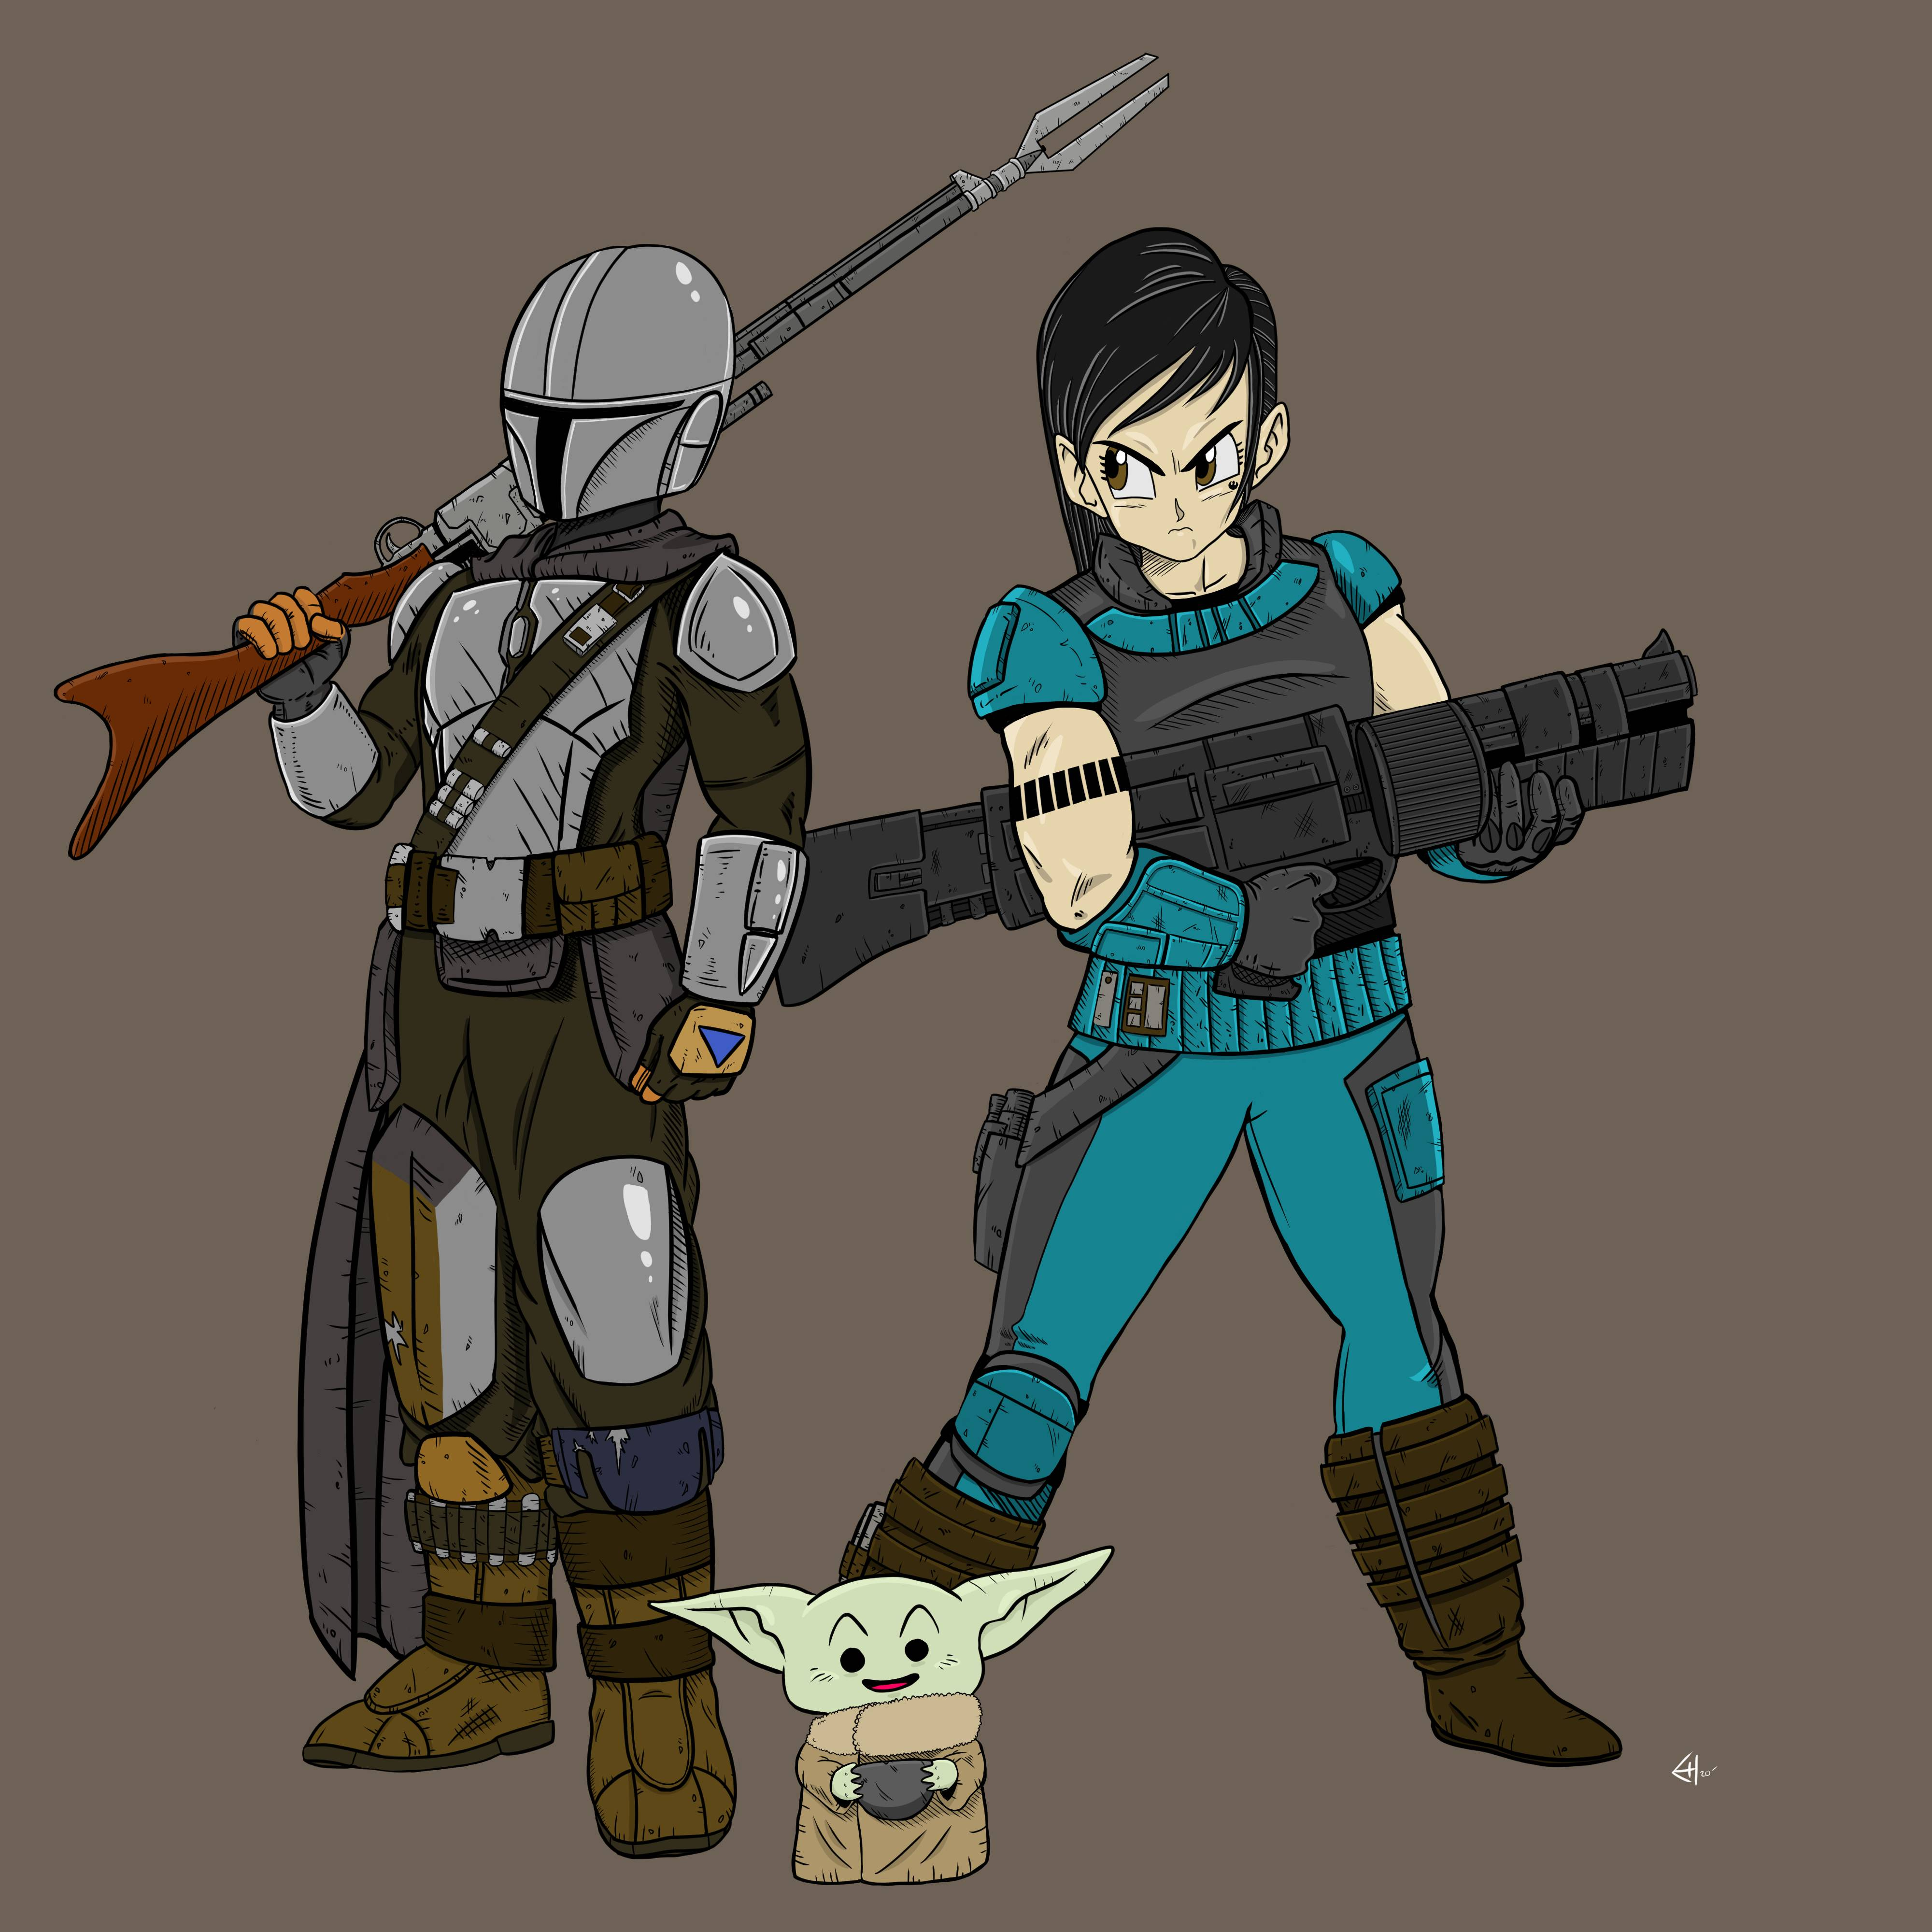 Today I drew The Mandalorian, The Child and Cara Dune in the style of Akira Toriyama